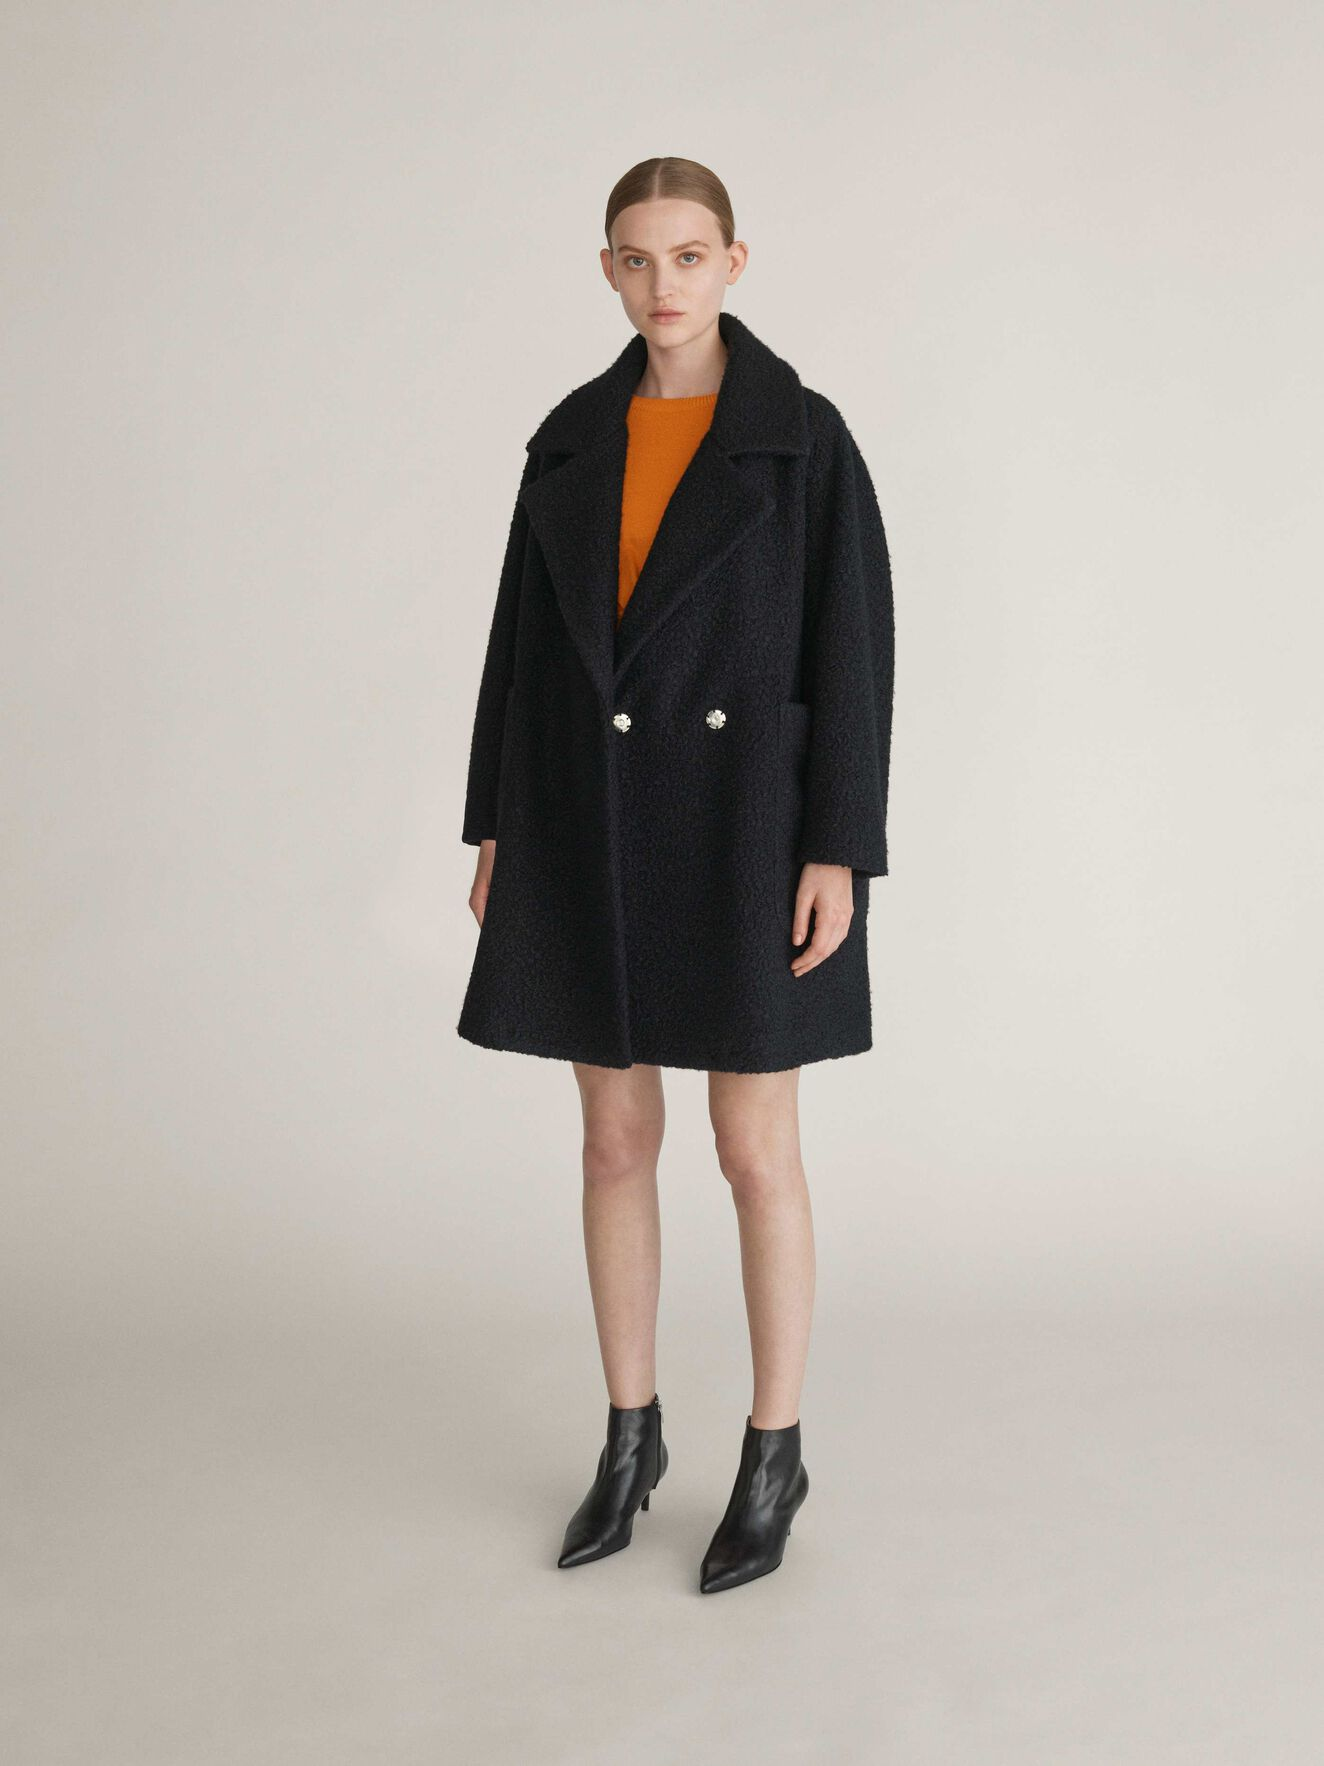 Calla Coat in Black from Tiger of Sweden